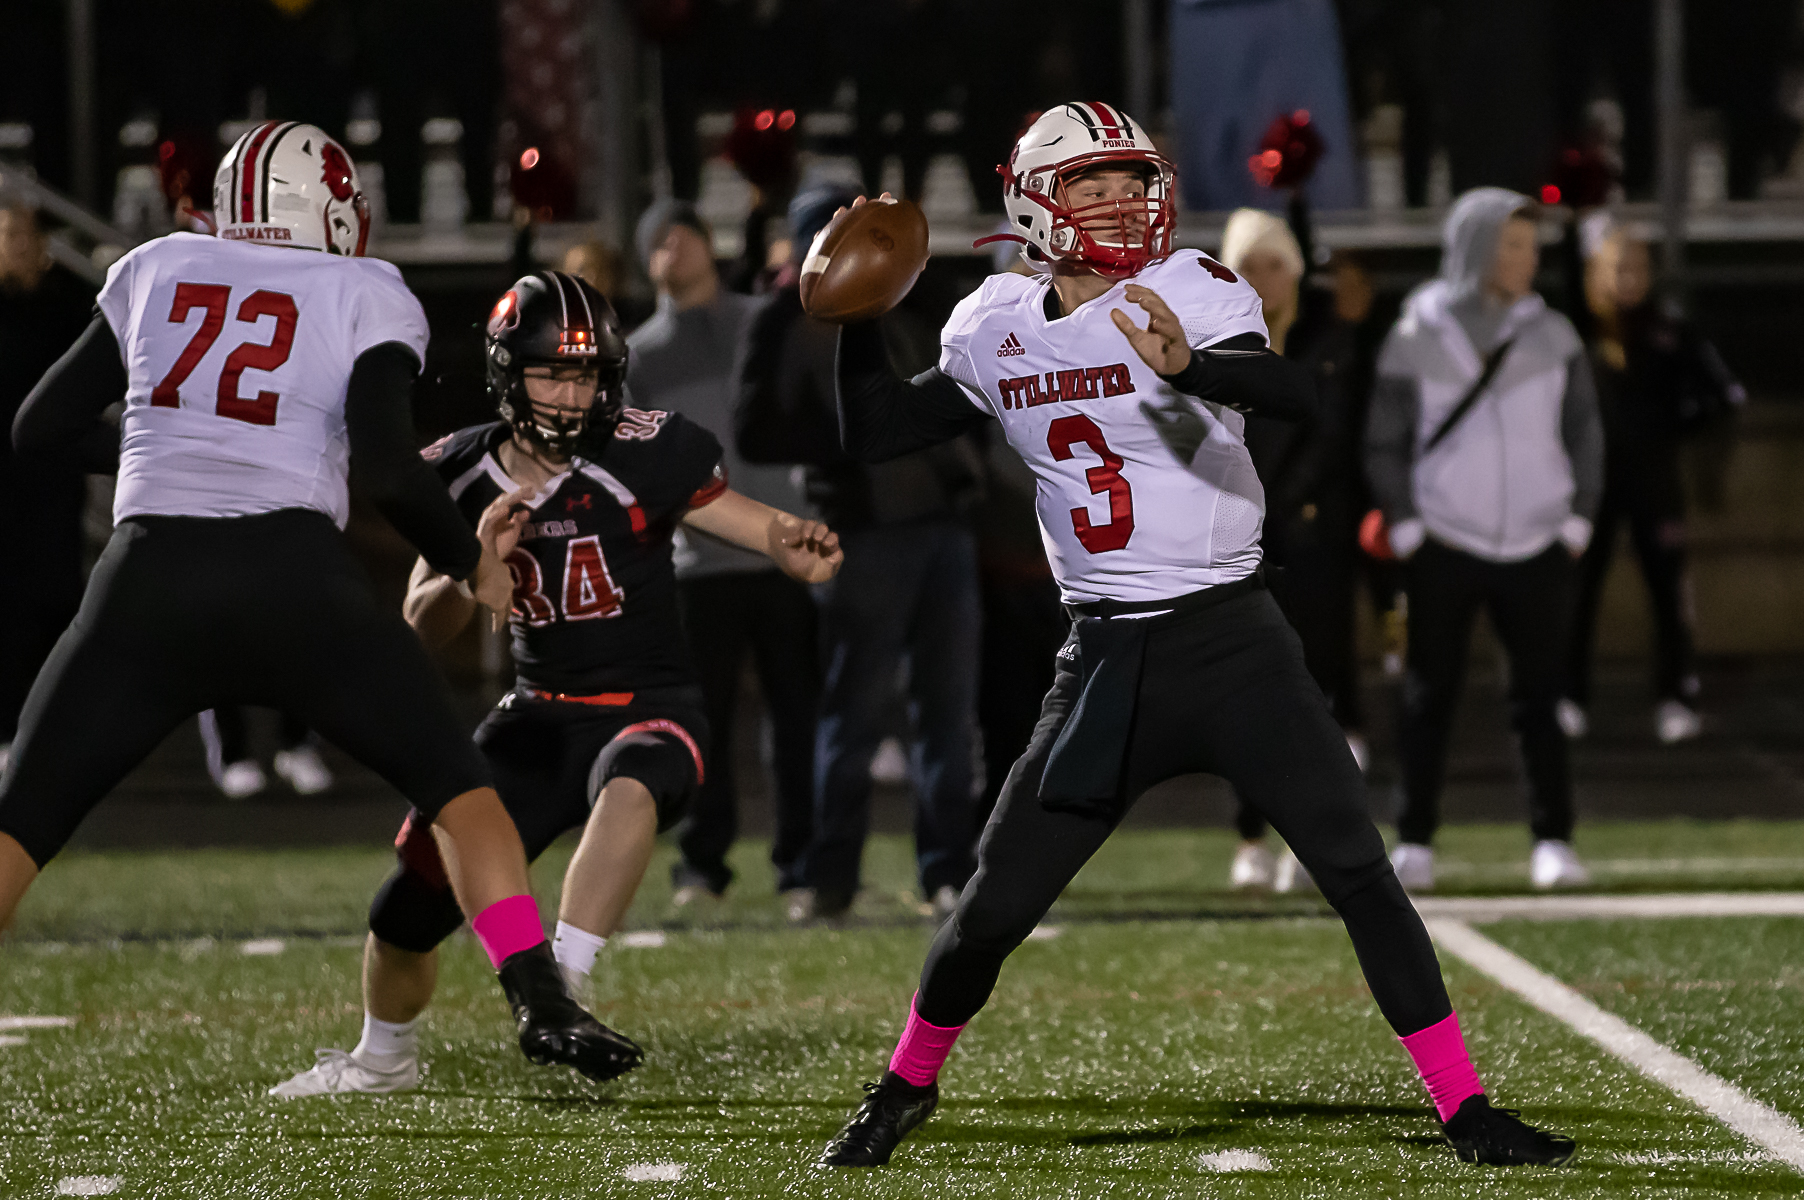 Stillwater junior quarterback Casey Venske (3) attempts a pass against host Shakopee Friday night. Venske completed the game with 95 yards passing. Photo by Gary Mukai, SportsEngine